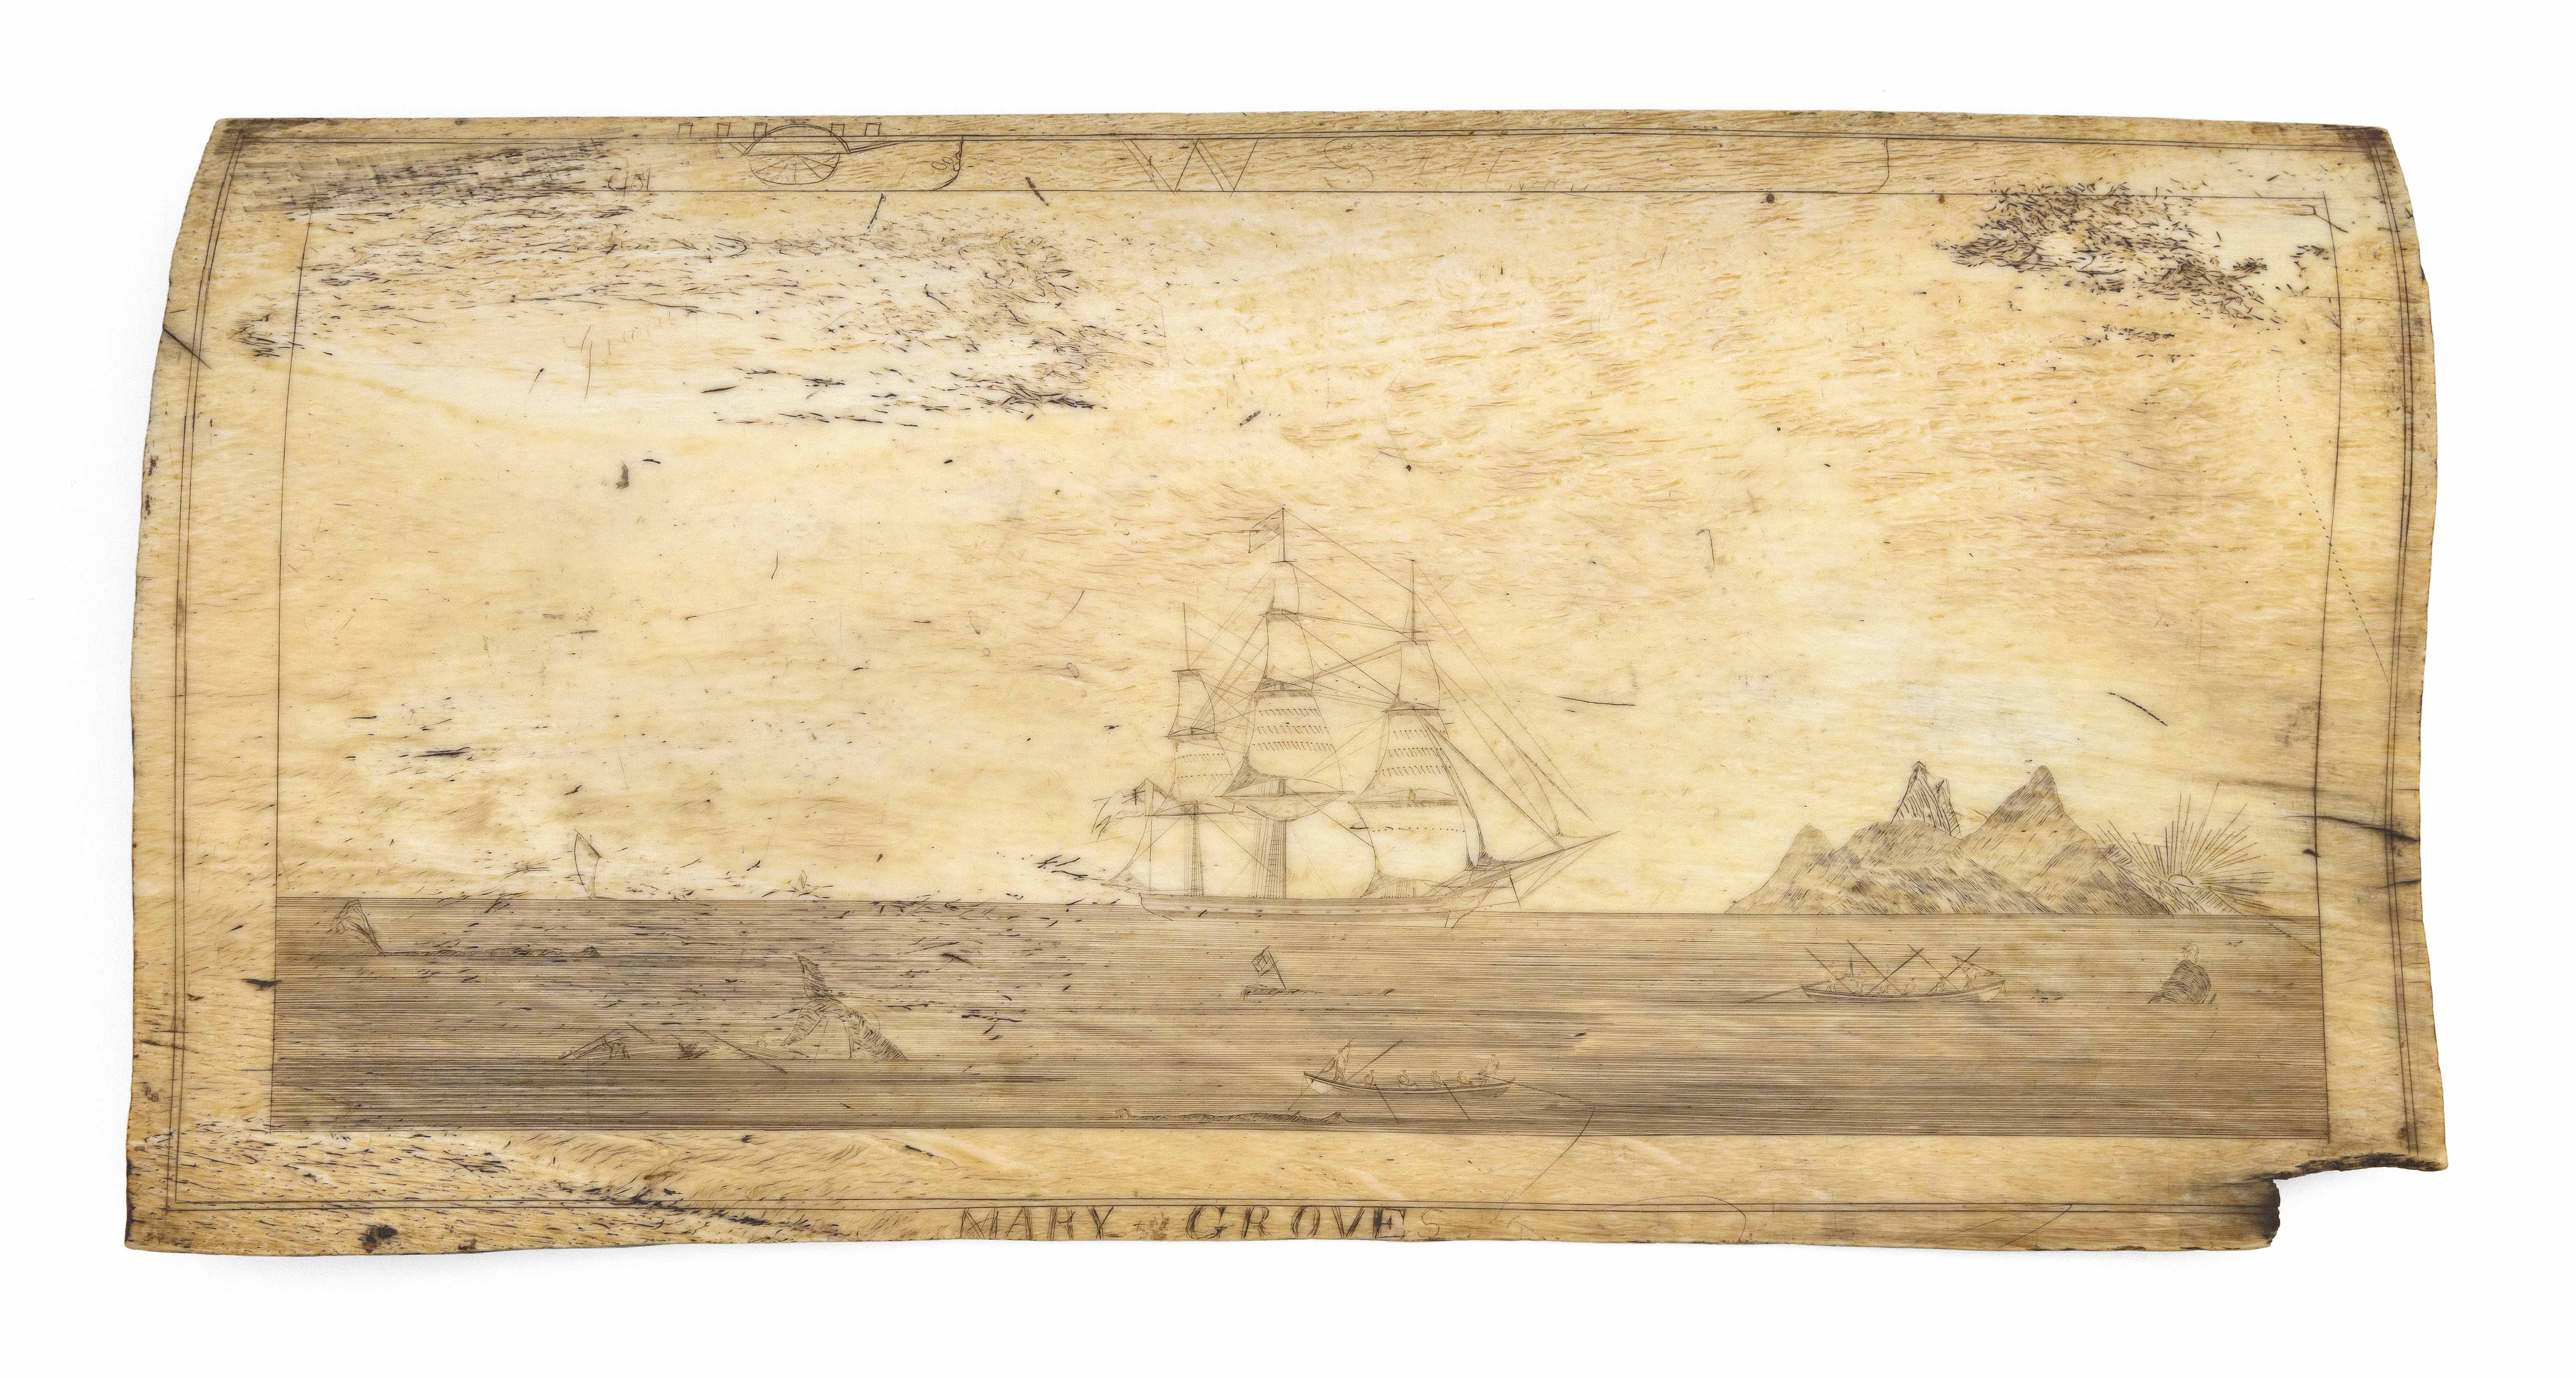 SCRIMSHAW PANBONE PLAQUE BY THE PANBONE ENGRAVER Circa 1830 Approx. 8